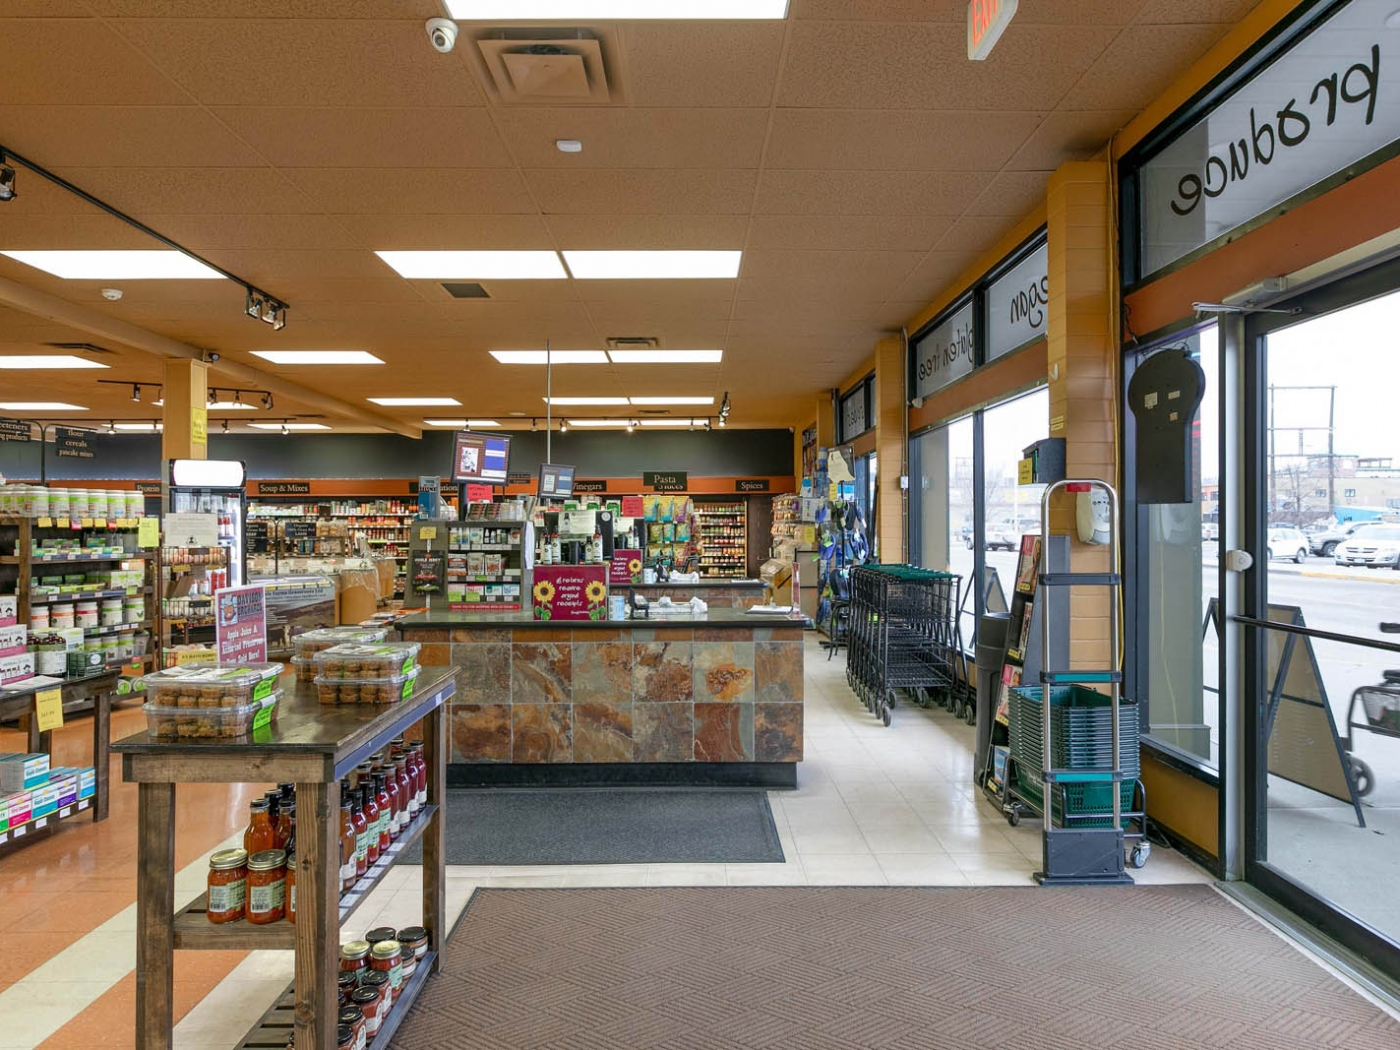 SIMPLY DELICIOUS NATURAL & GOURMET MARKET - VERNON, B.C. is a business for sale in BC.